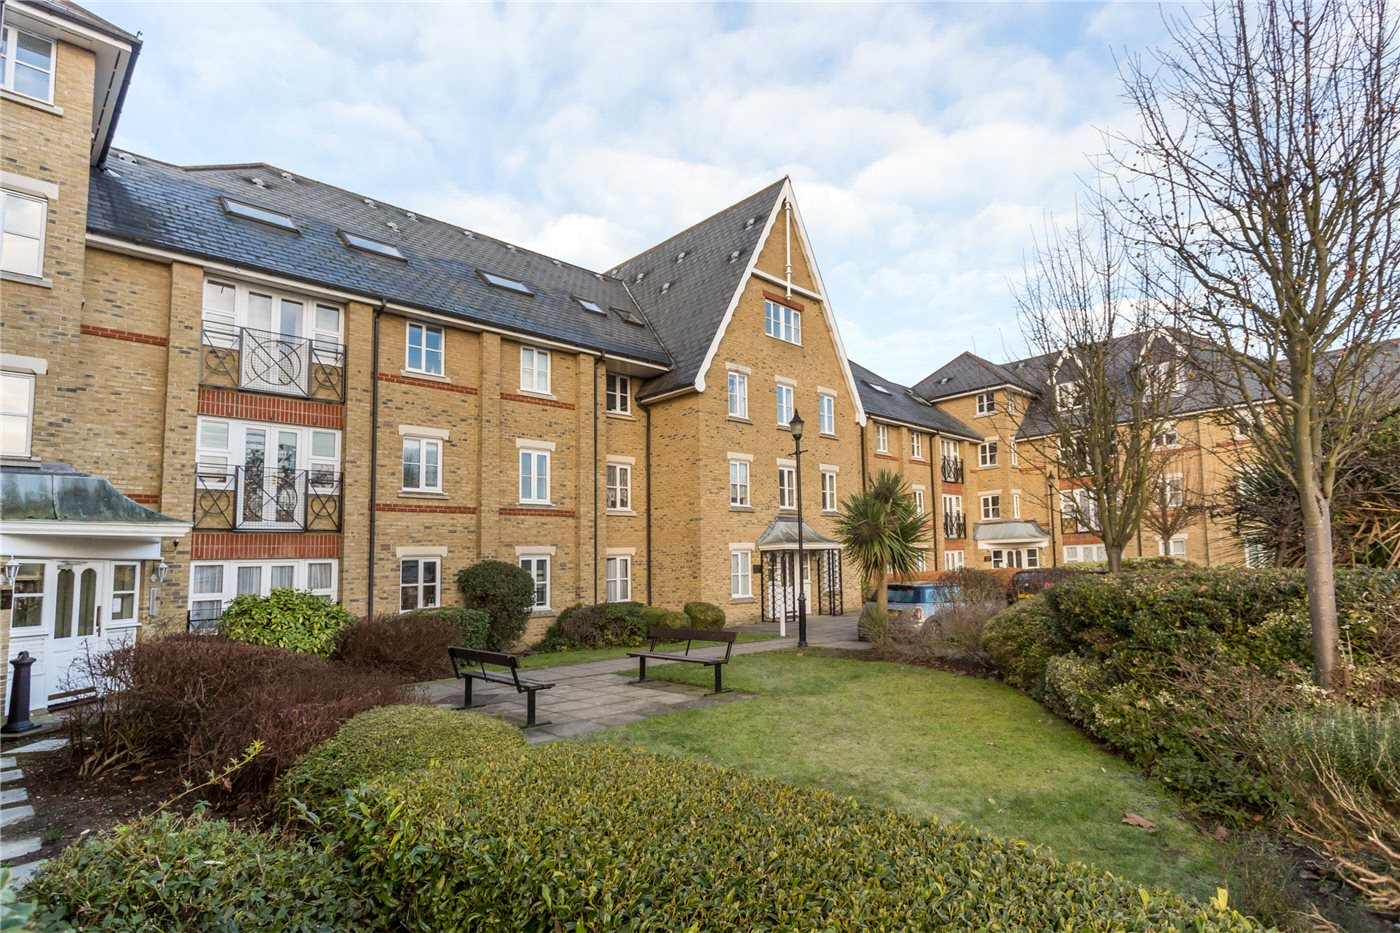 1 Bedroom Flat for sale in Whitakers Lodge, Gater Drive, Enfield, EN2